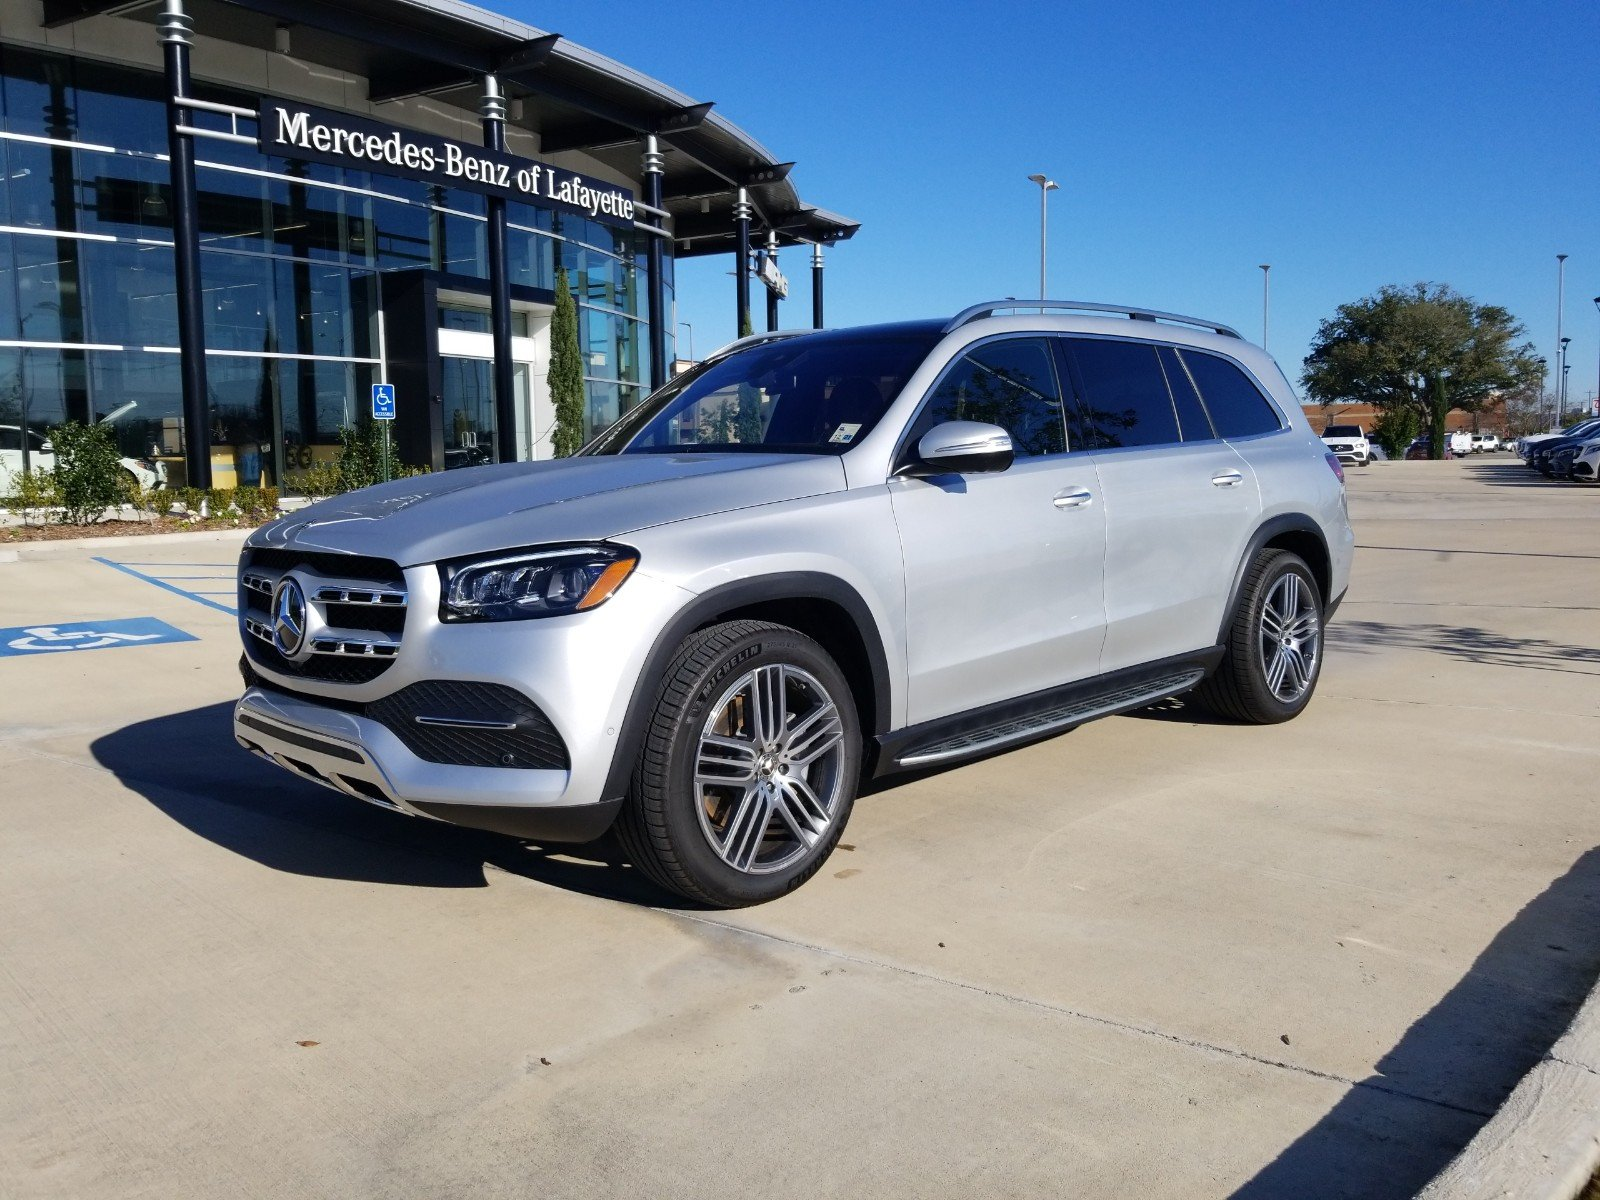 Pre-Owned 2020 Mercedes-Benz GLS450 GLS 450